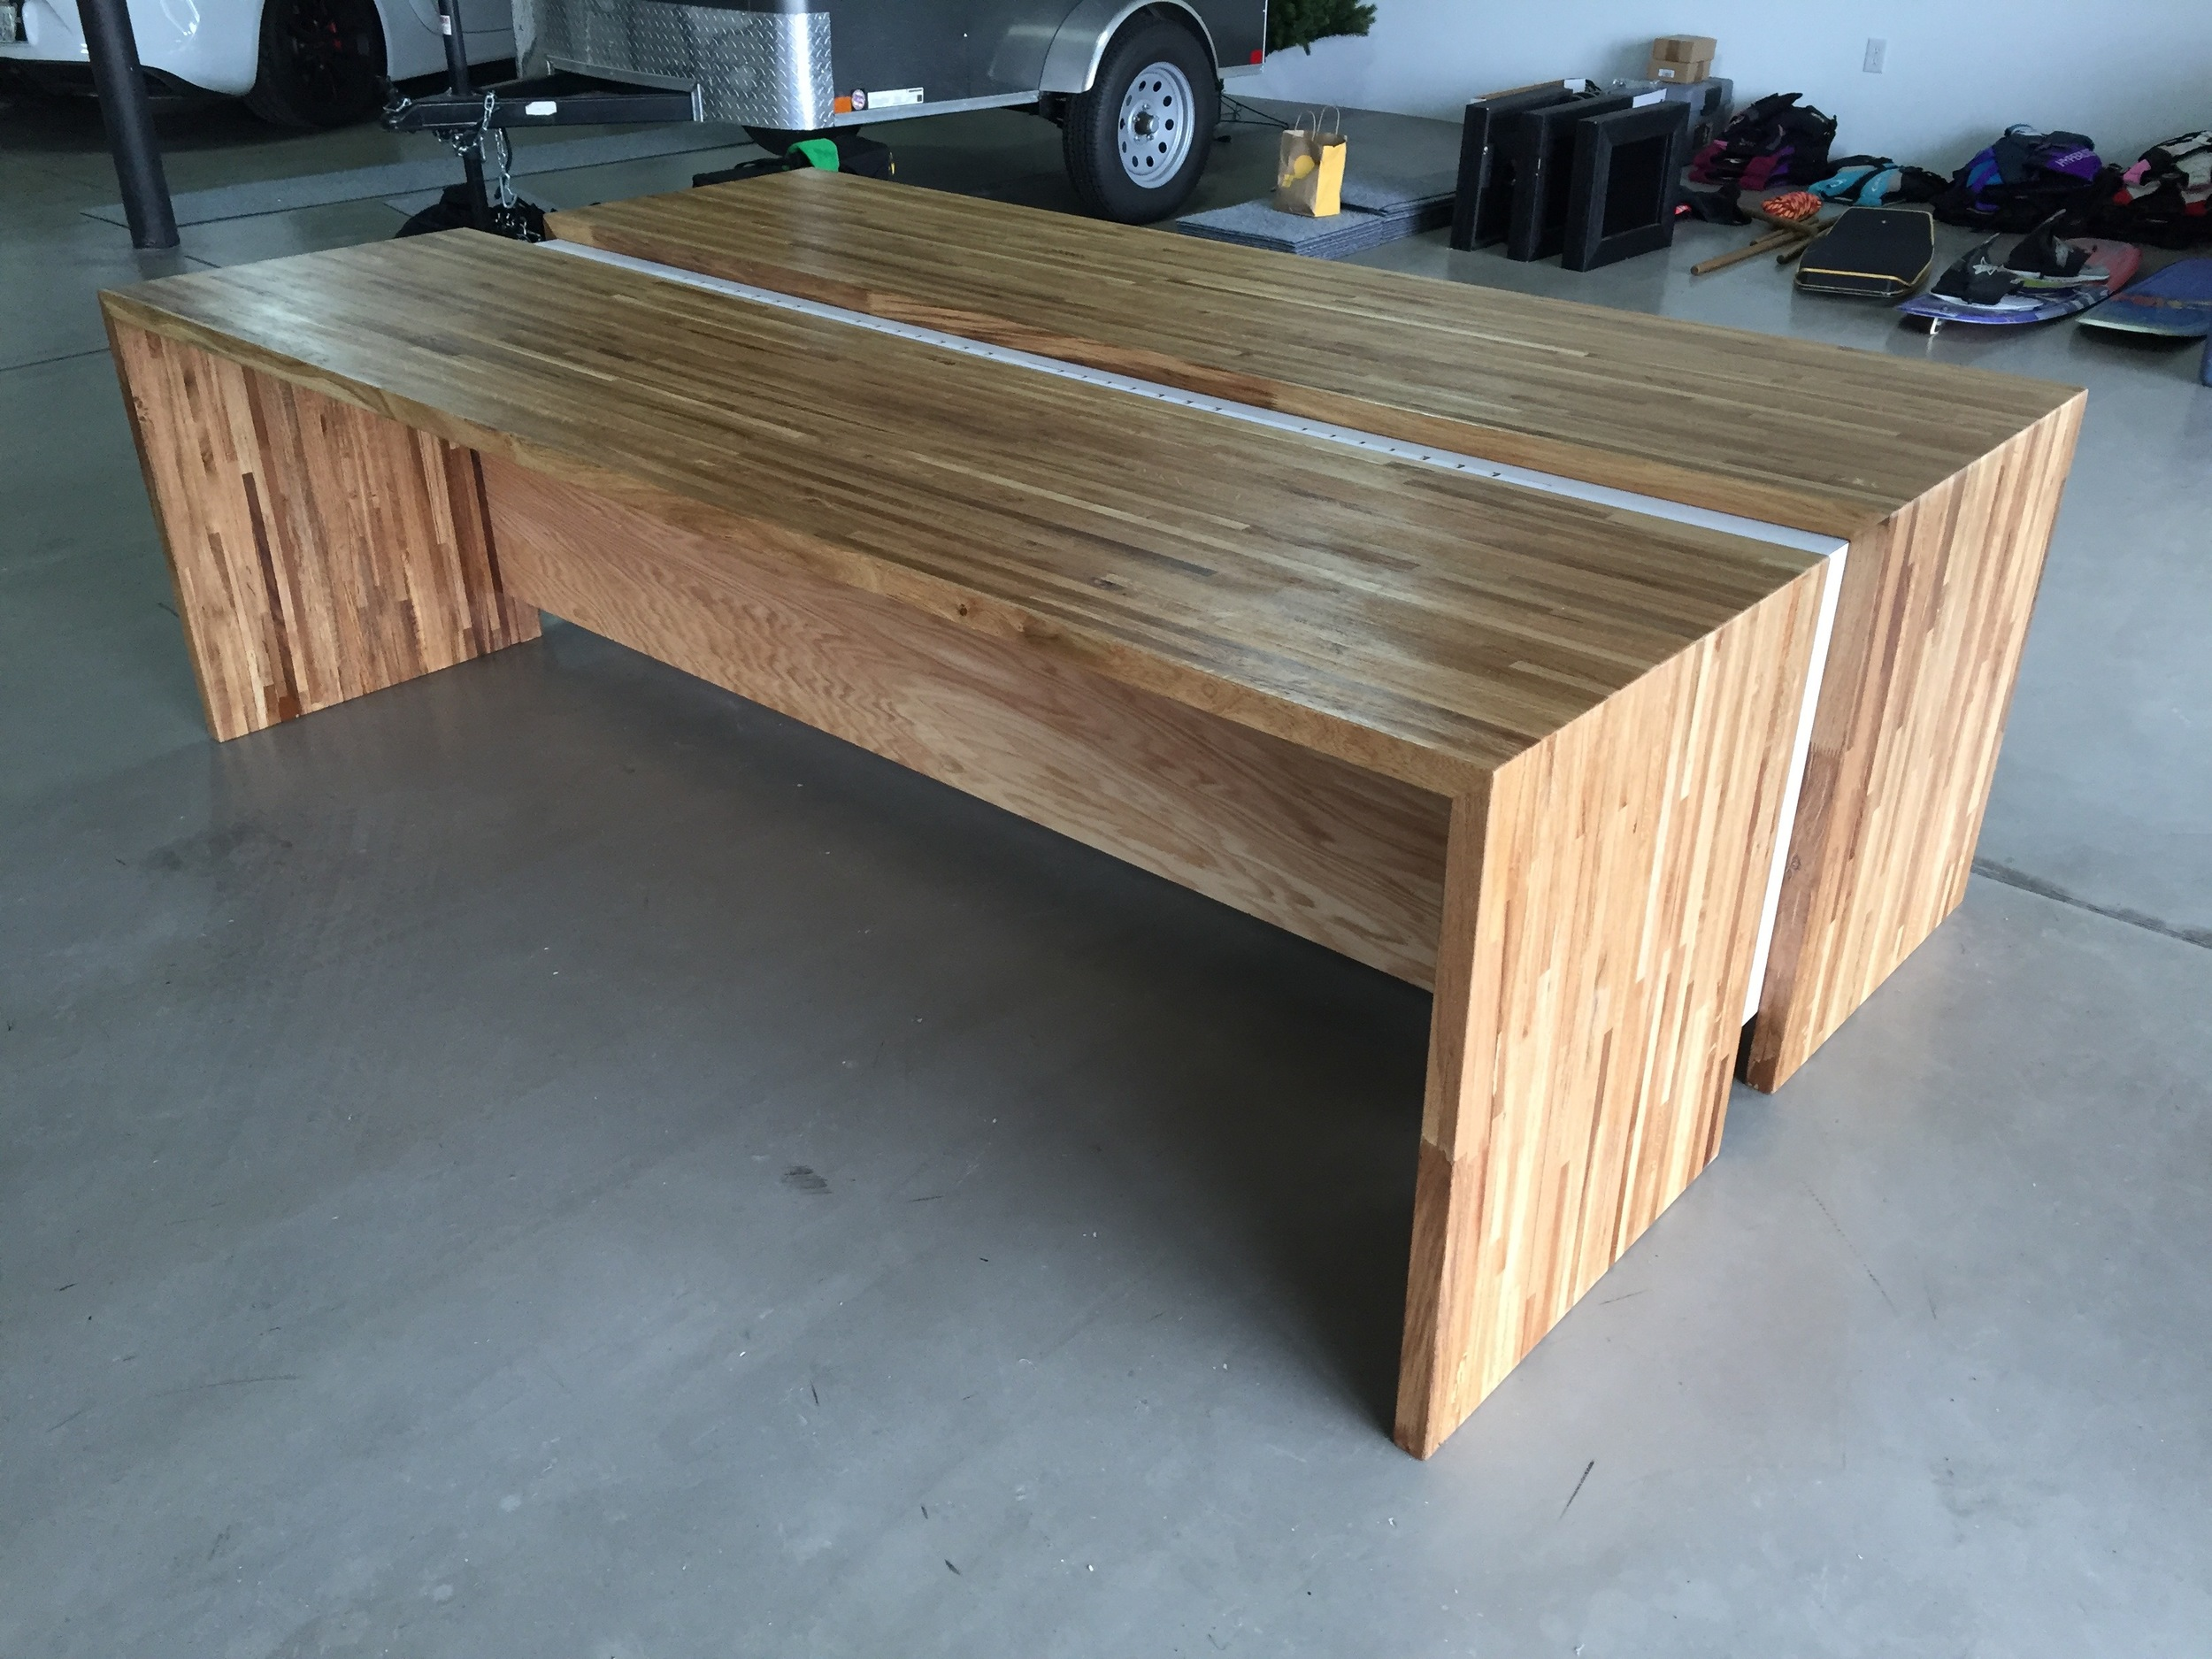 This was desk 1 of 5, made with a different supplier of oak butcher block. This one featured traditional joinery with a dadoed back panel and glued miter joints with blind splines for strength.